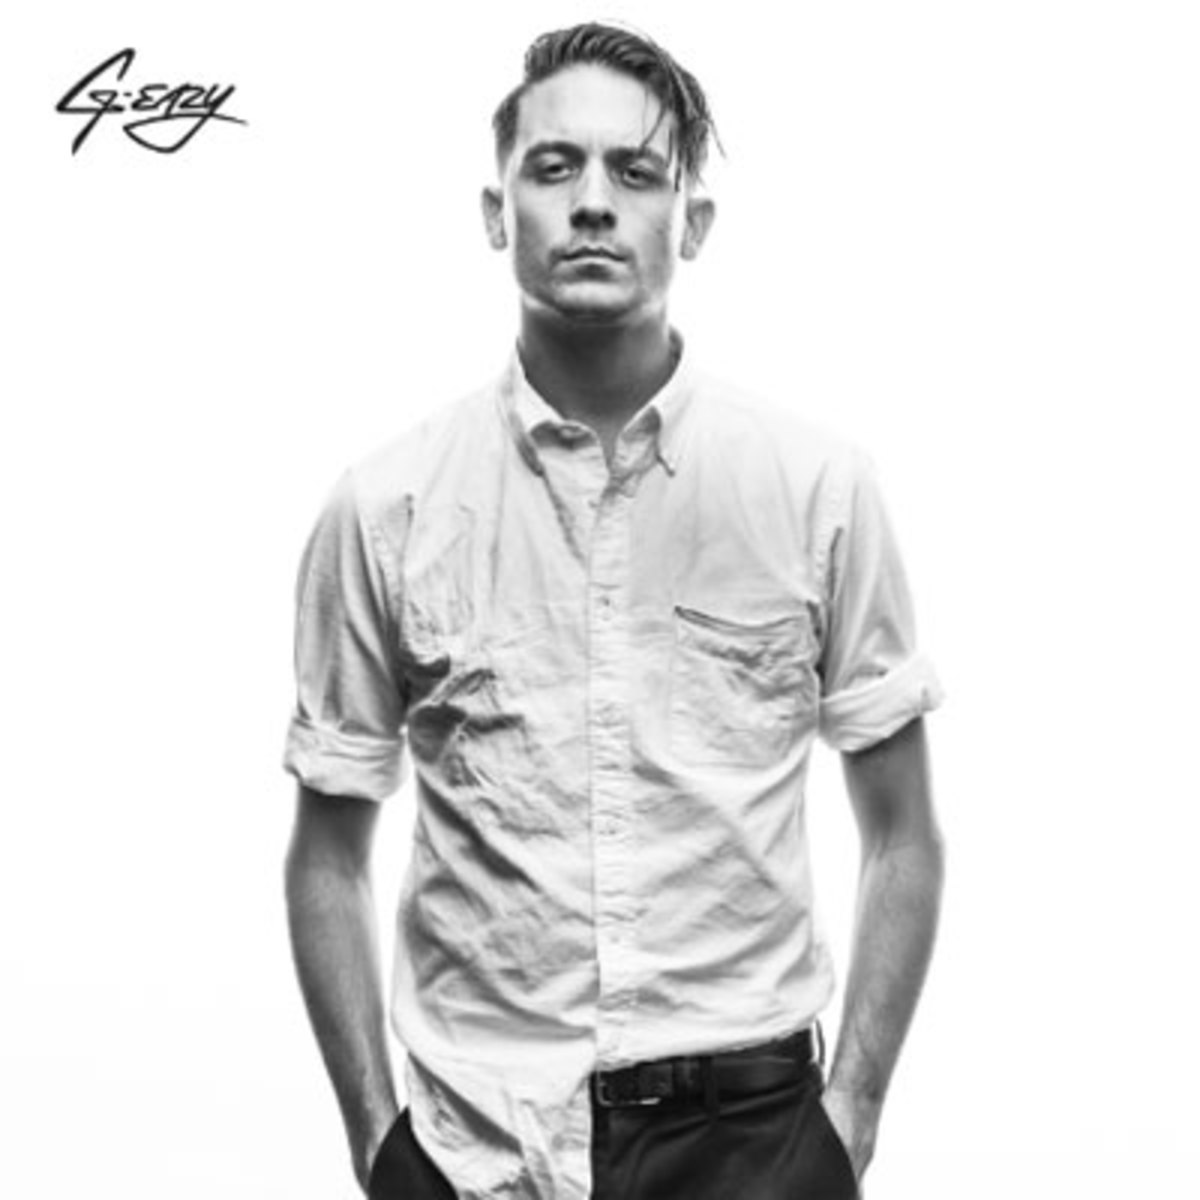 geazy-thesethingshappen.jpg